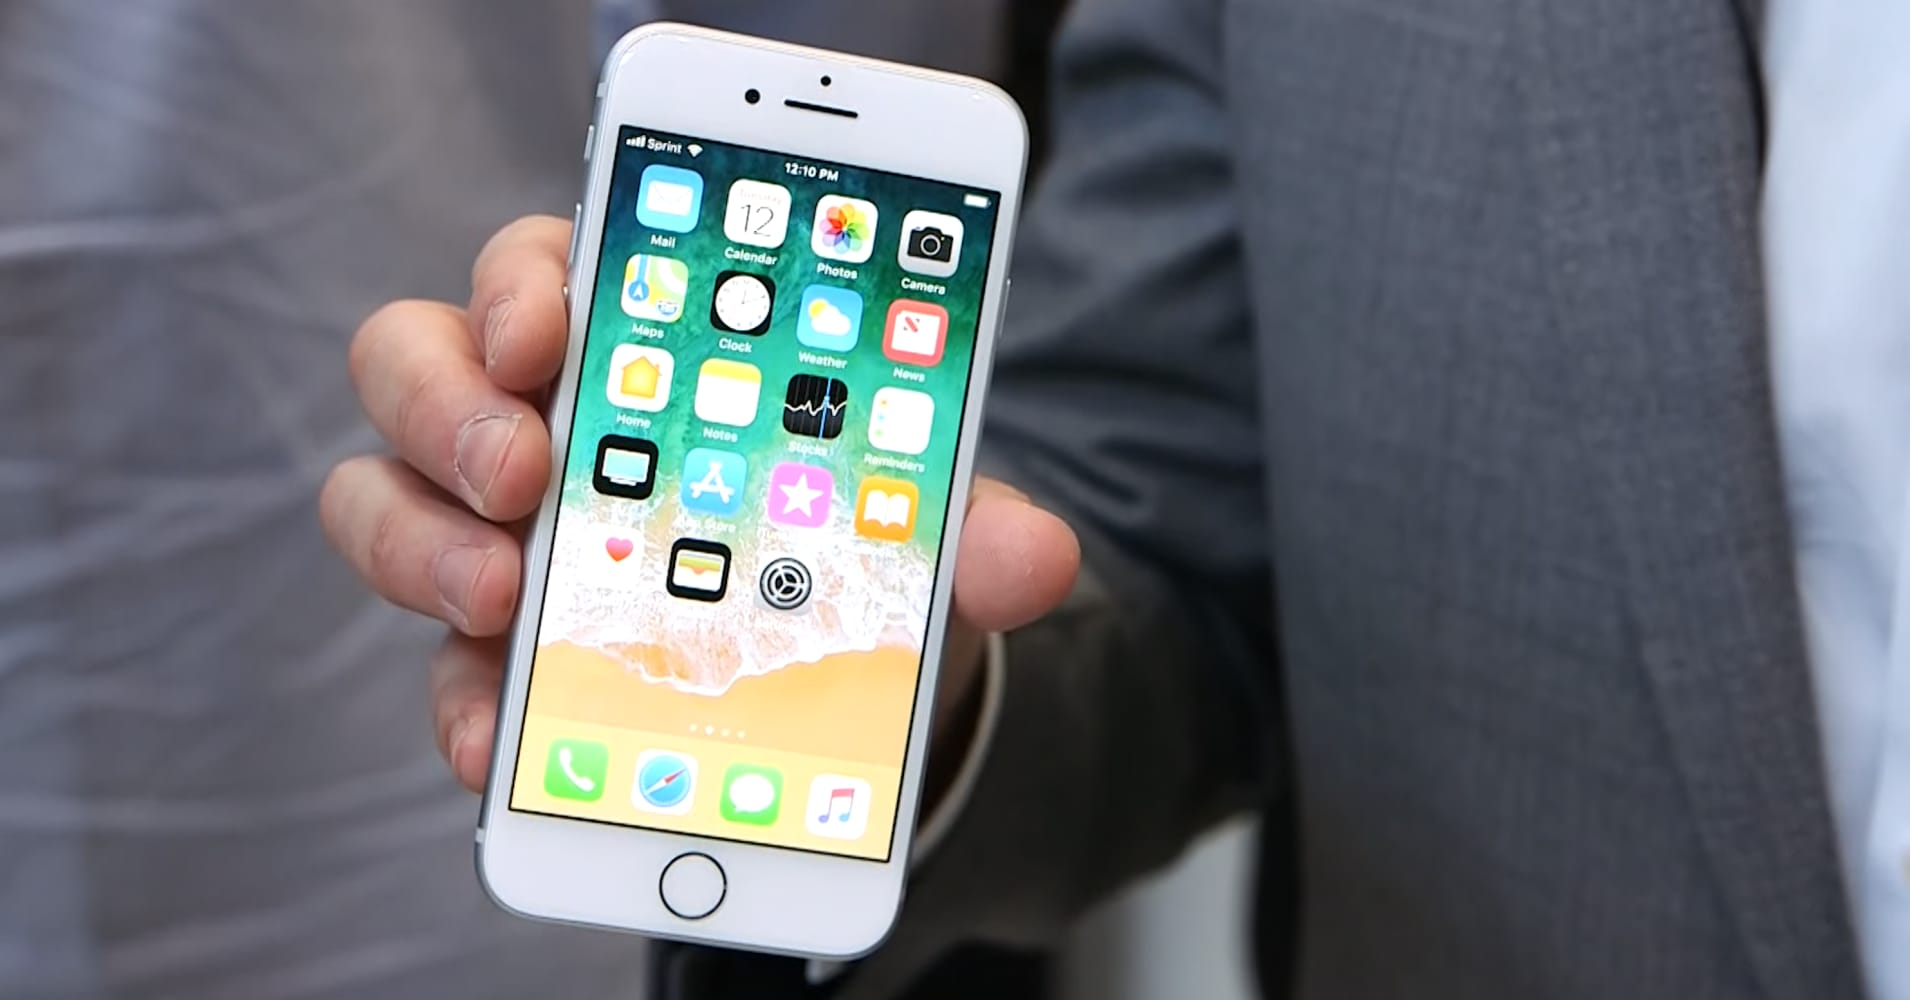 Hands-on with the iPhone 8